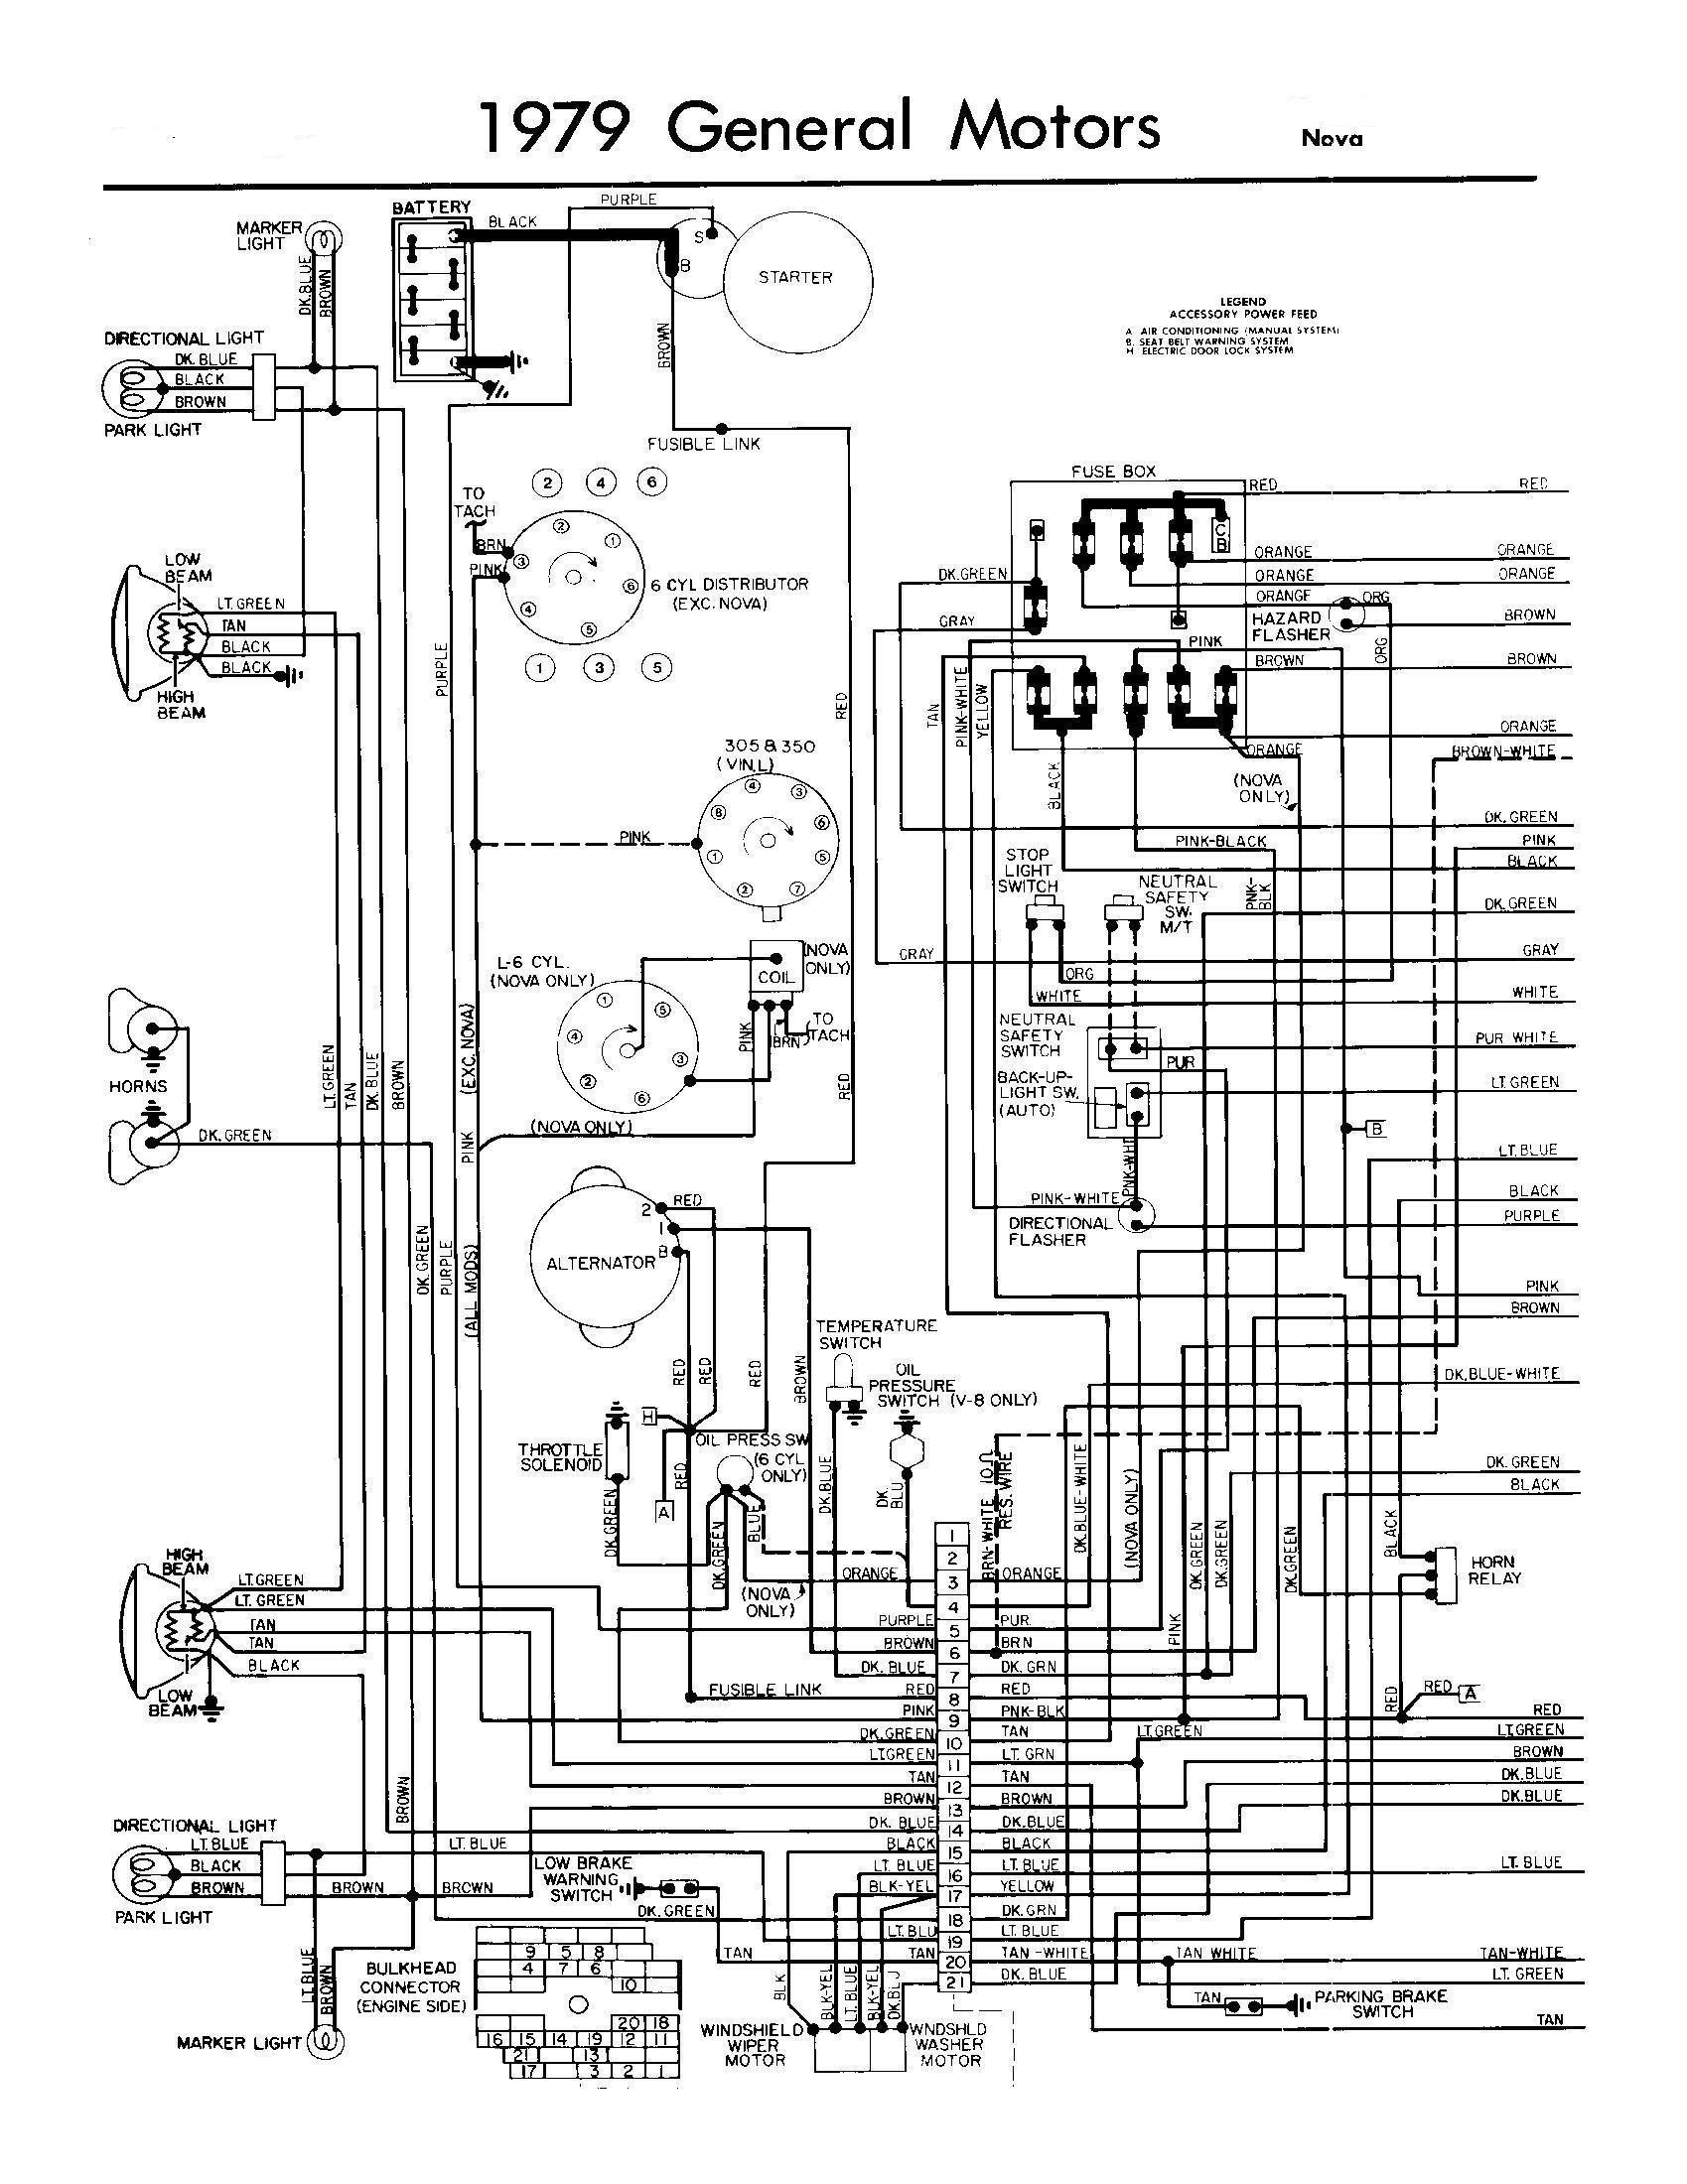 9n ford Tractor Wiring Diagram 1066 International Tractor Wiring Diagram Mastering Wiring Diagram • Of 9n ford Tractor Wiring Diagram 1066 International Tractor Wiring Diagram Mastering Wiring Diagram •